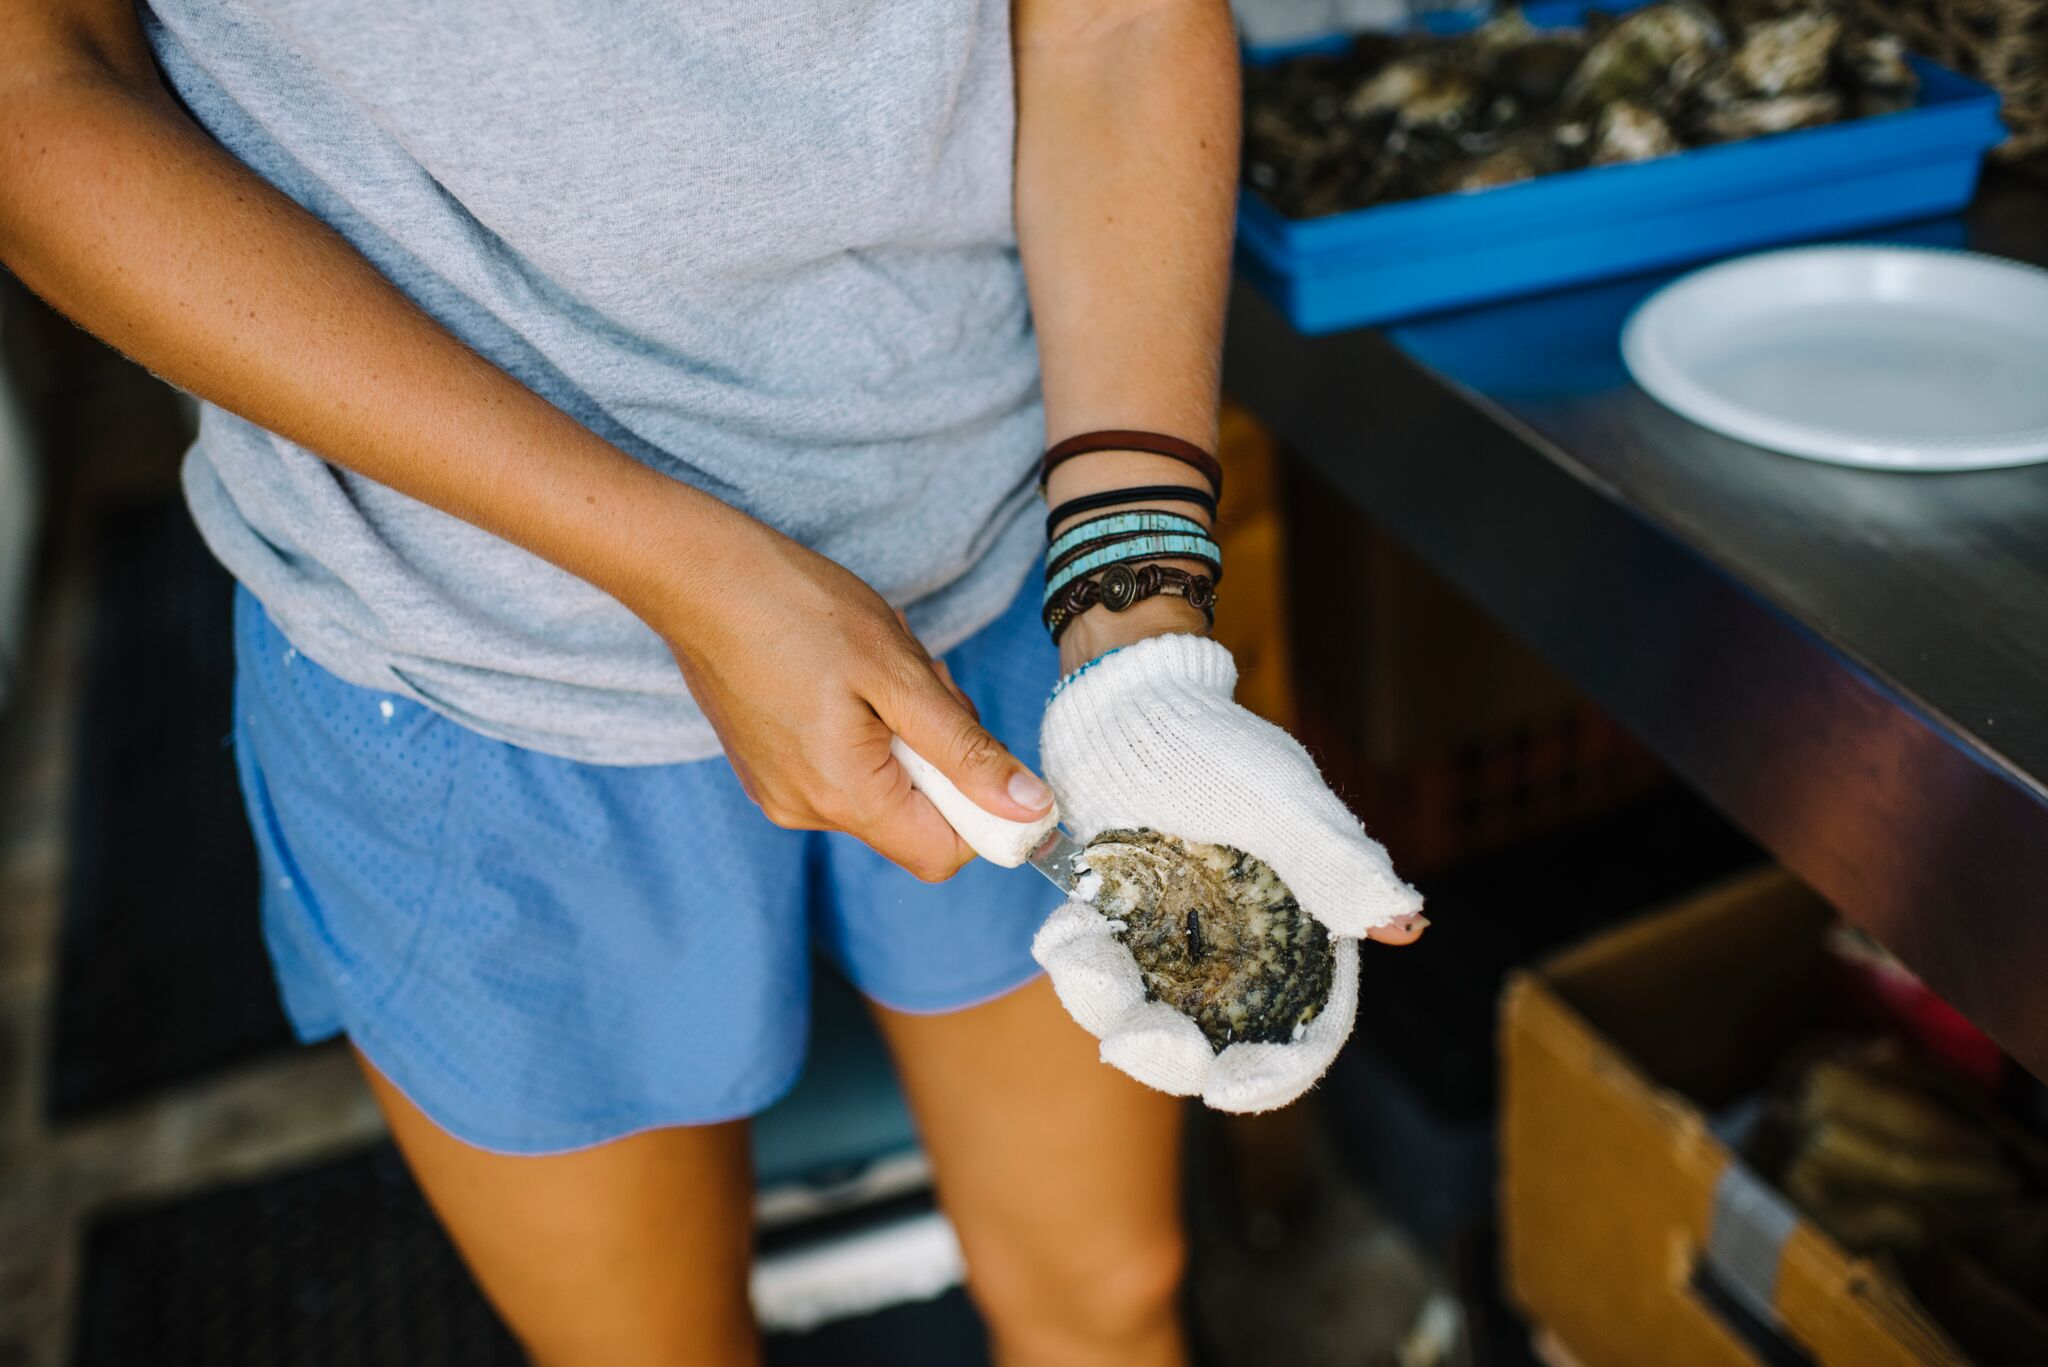 Shucking the oyster at Harbor Raw Bar